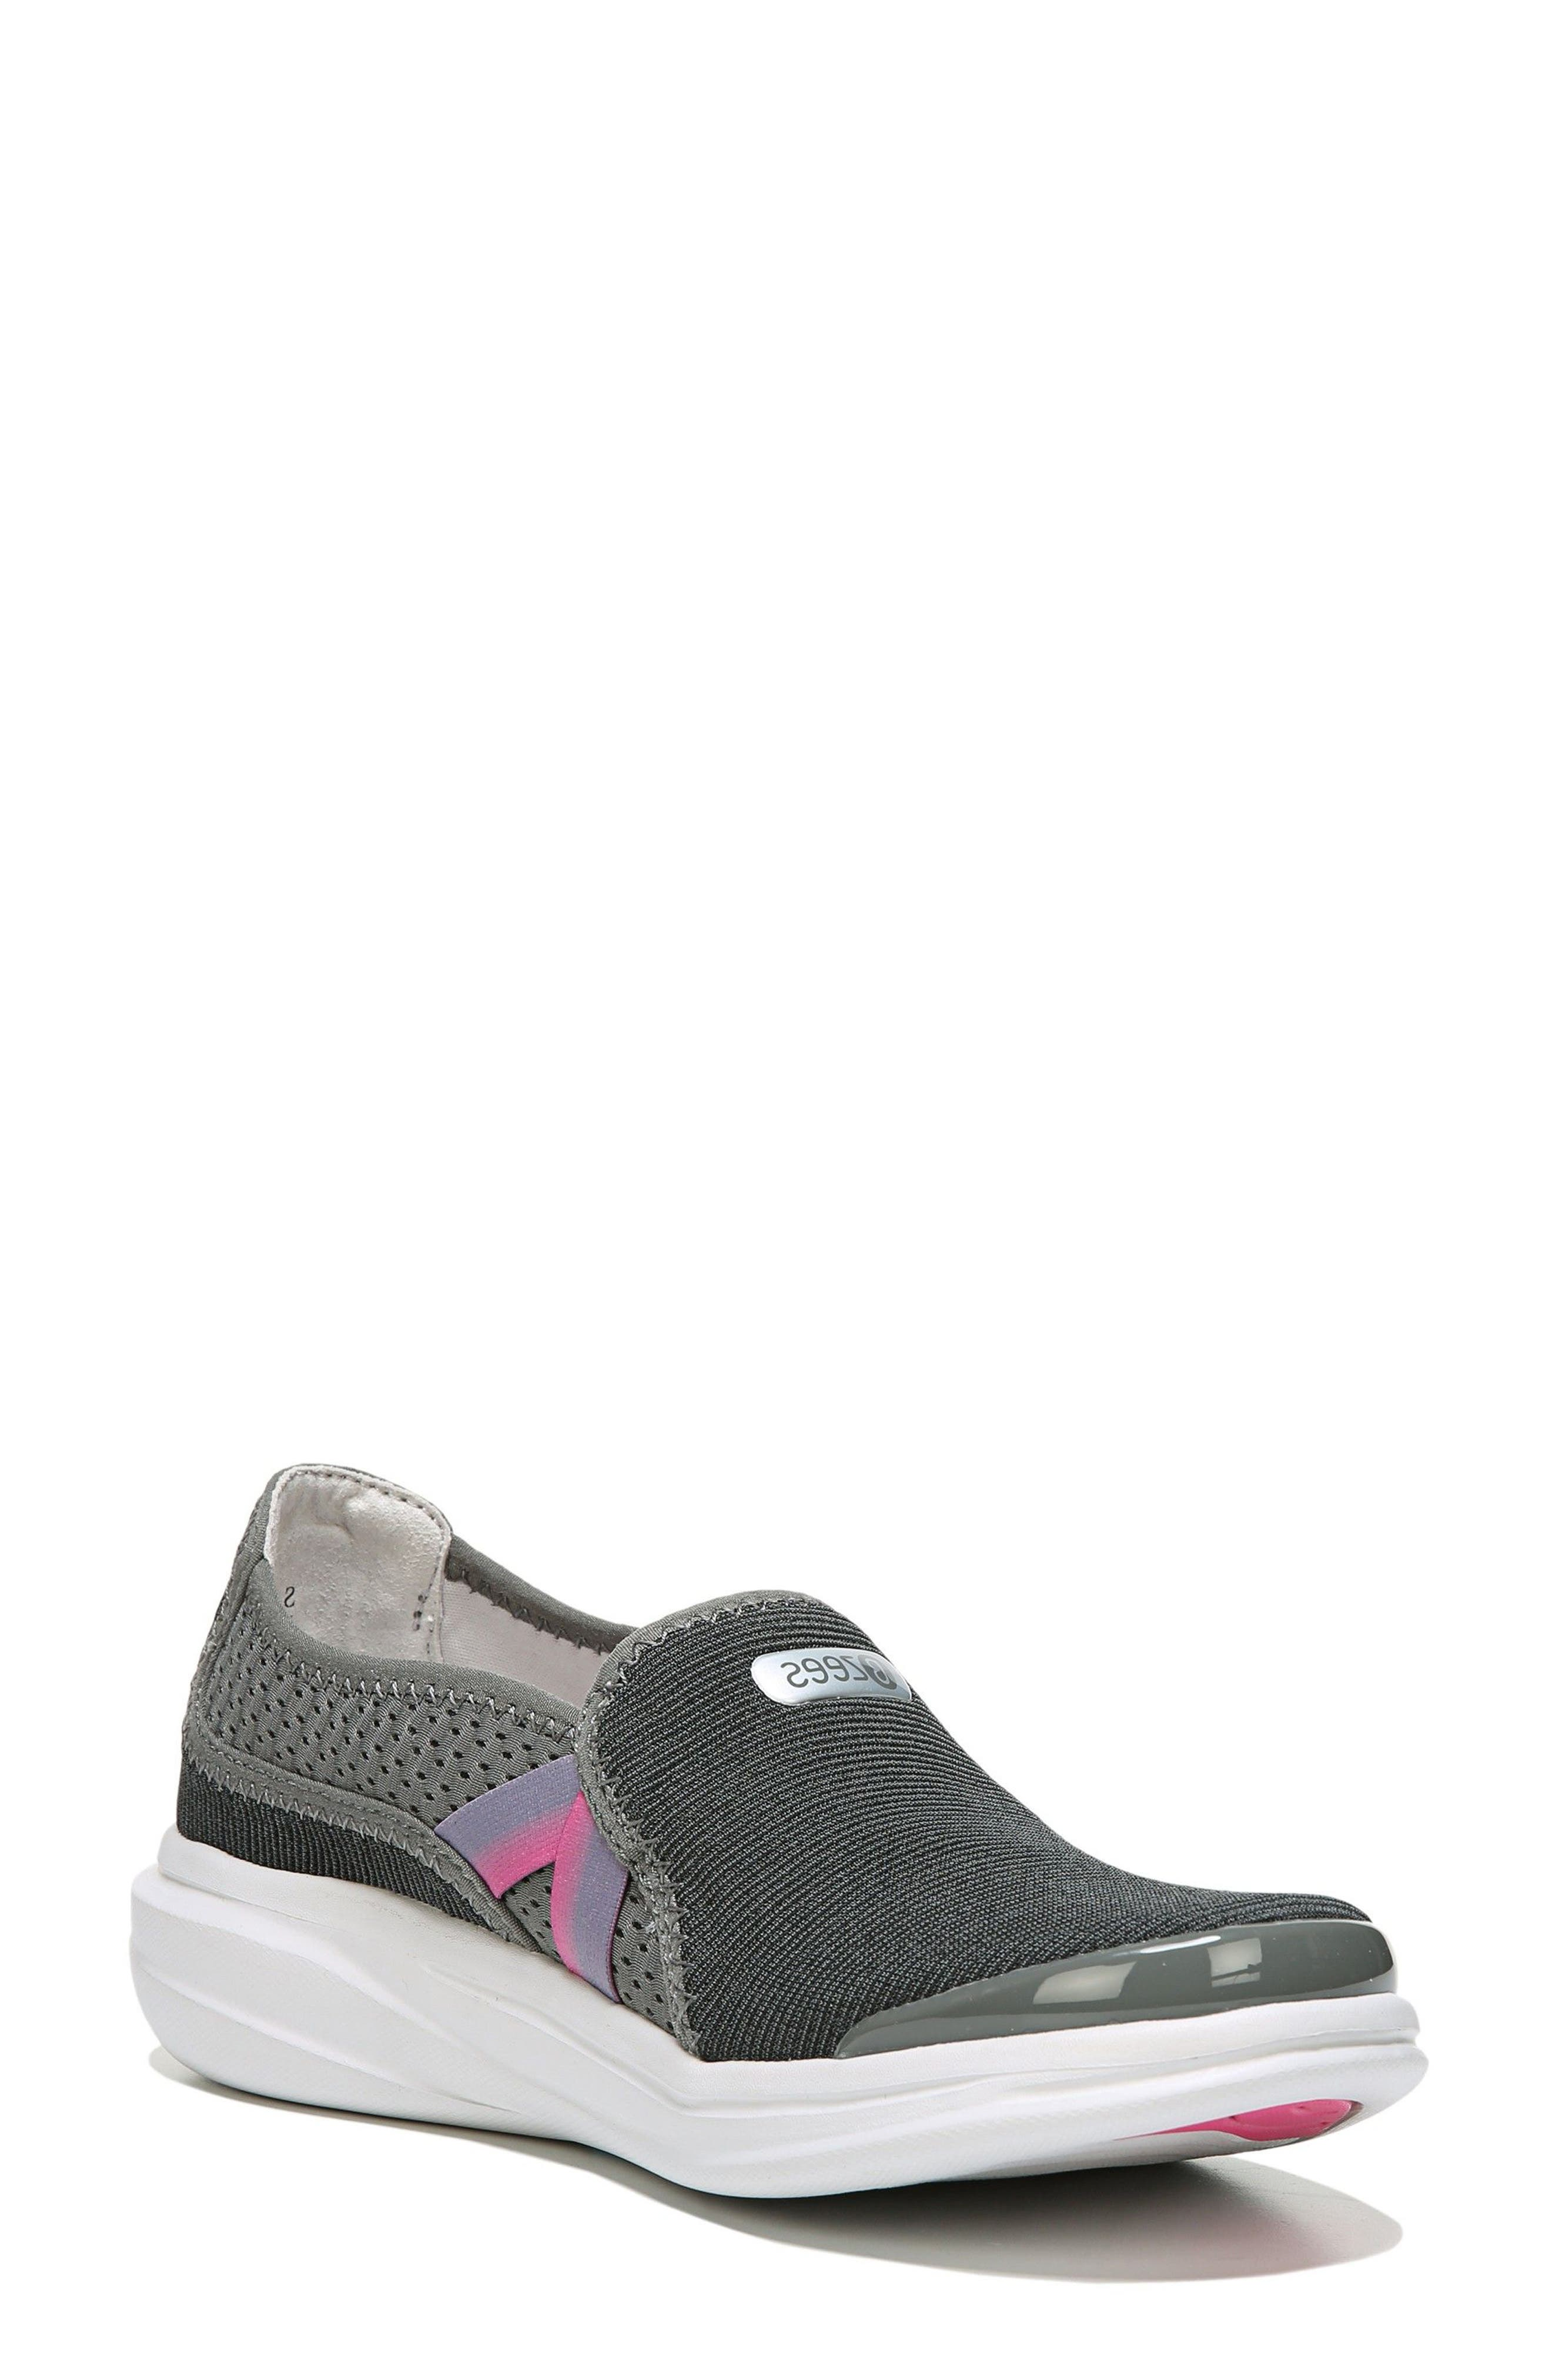 BZees Cruise Slip-On Sneaker (Women)